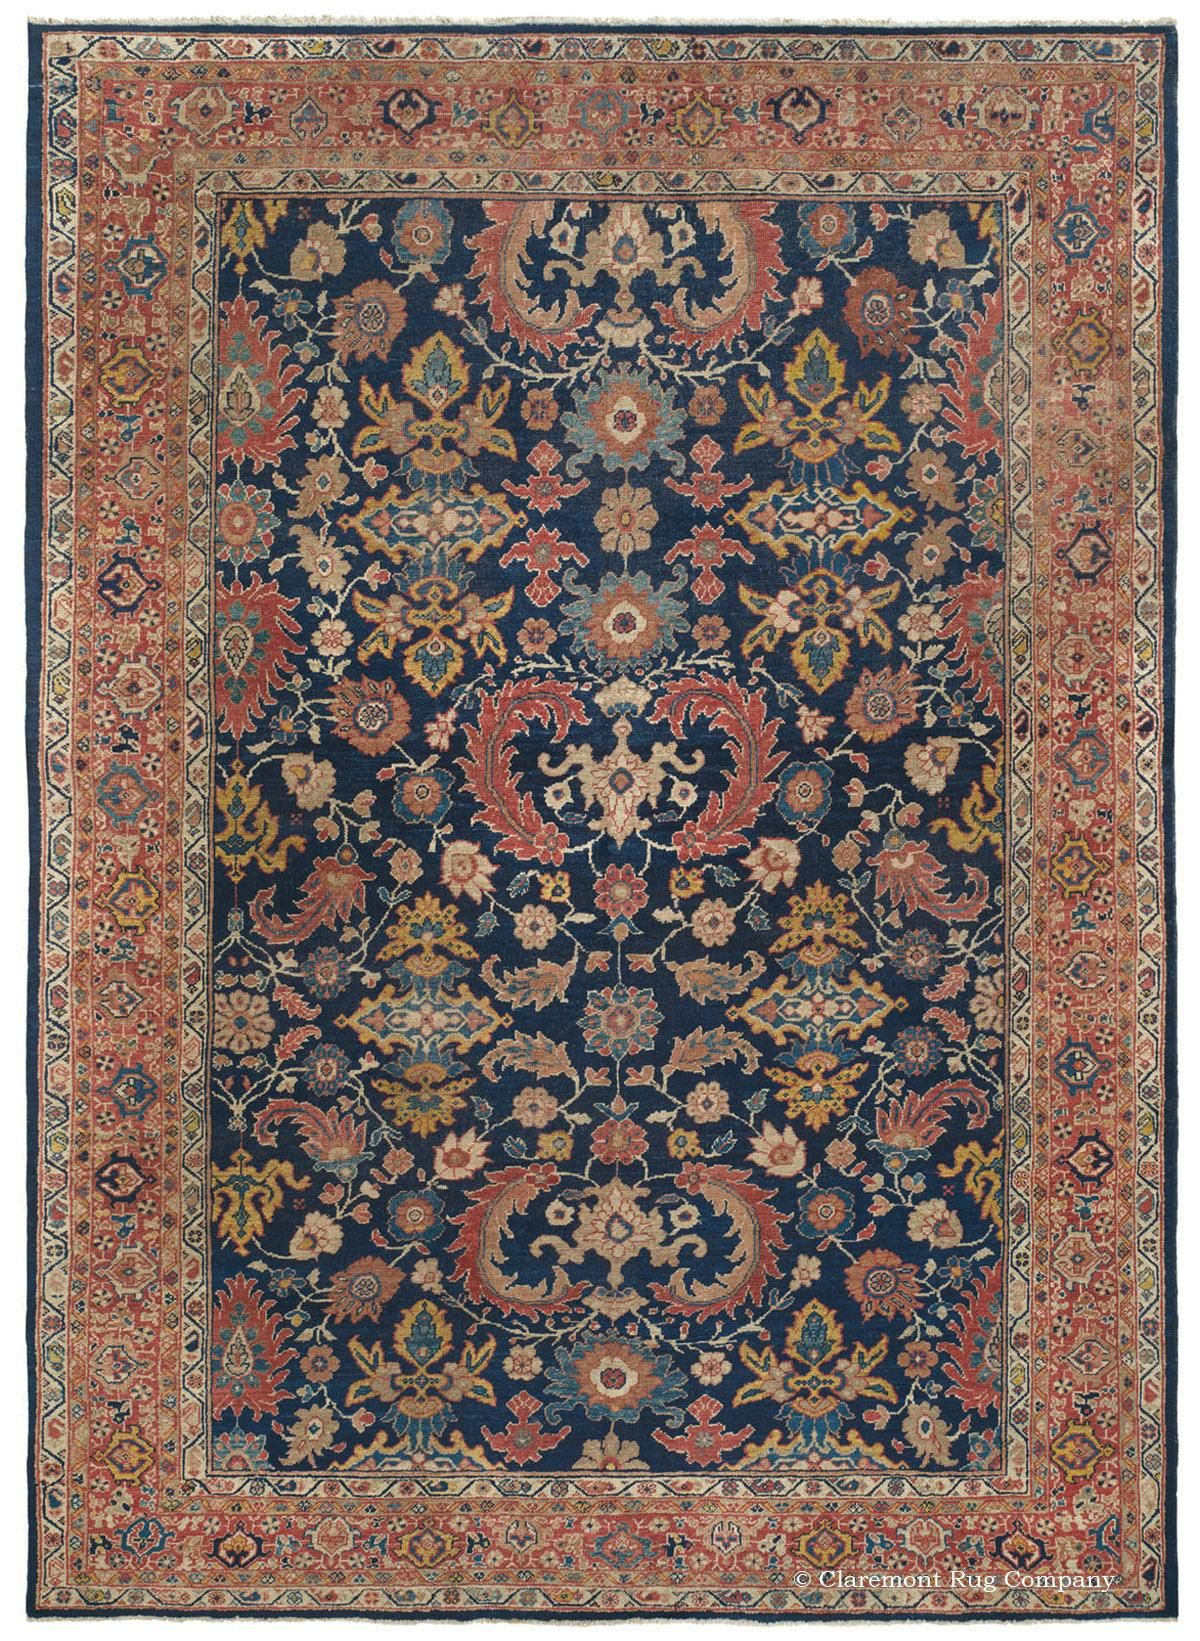 Sultanabad West Central Persian 7ft 11in X 10ft 5in Circa 1900 Rugs Persian Carpet Antique Rugs